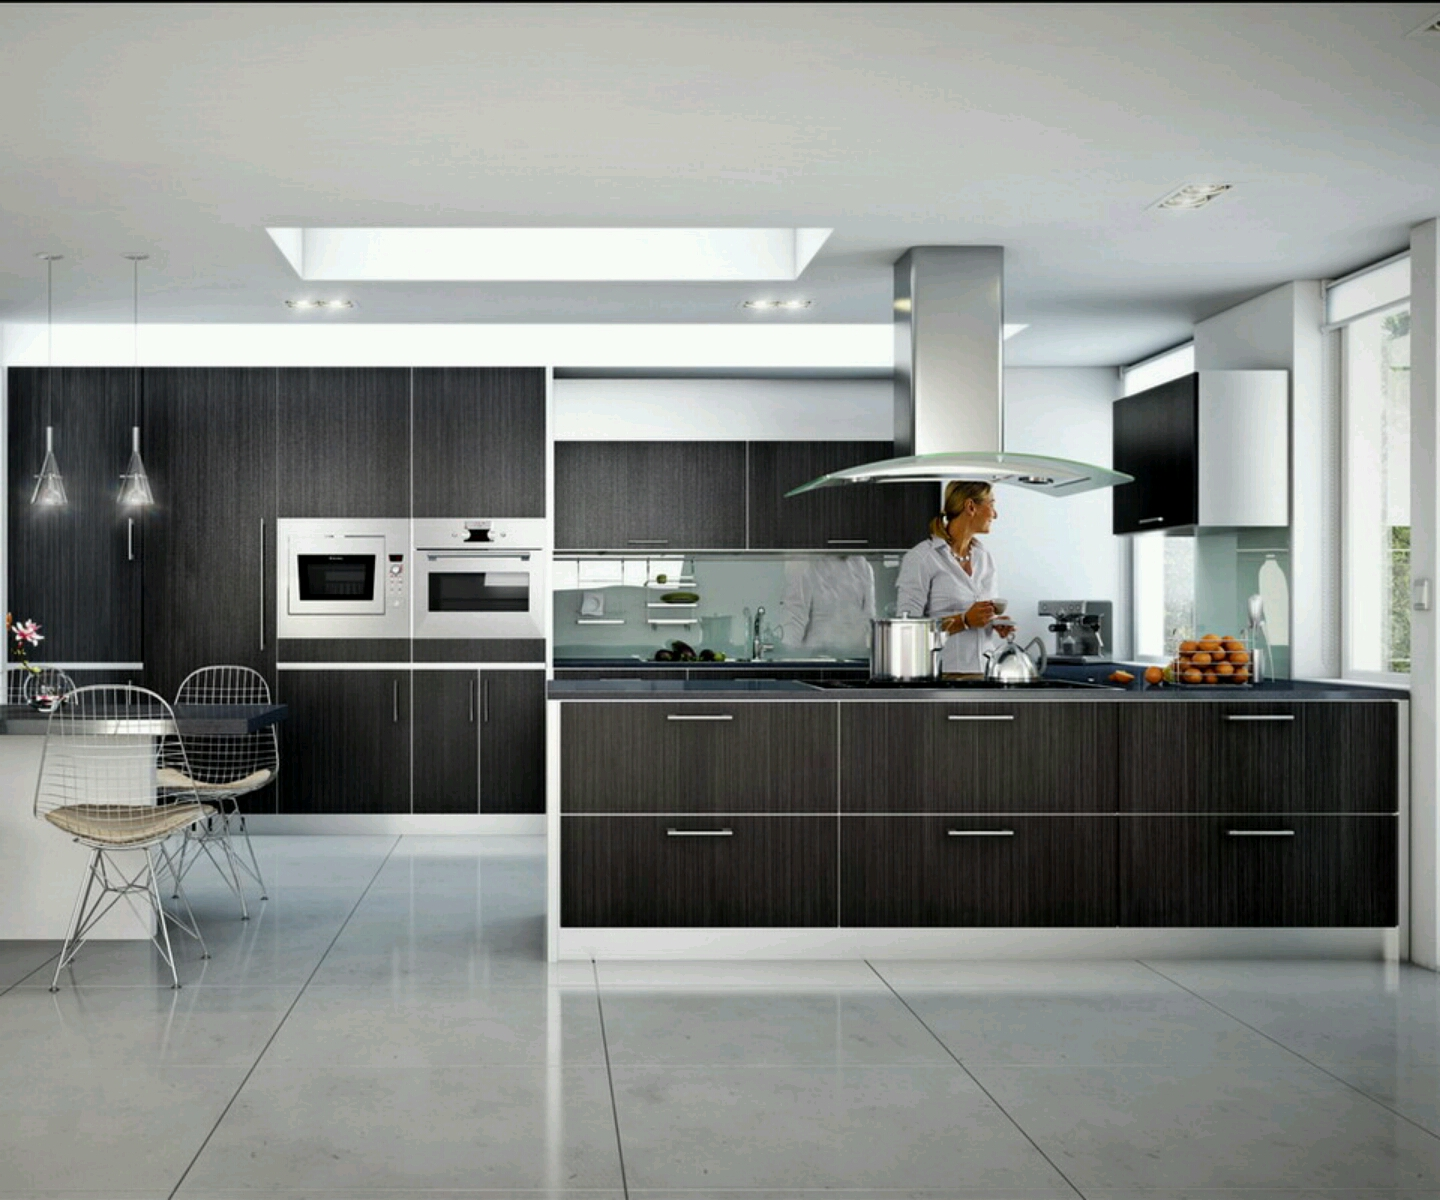 new style kitchen design 30 modern kitchen design ideas 3527